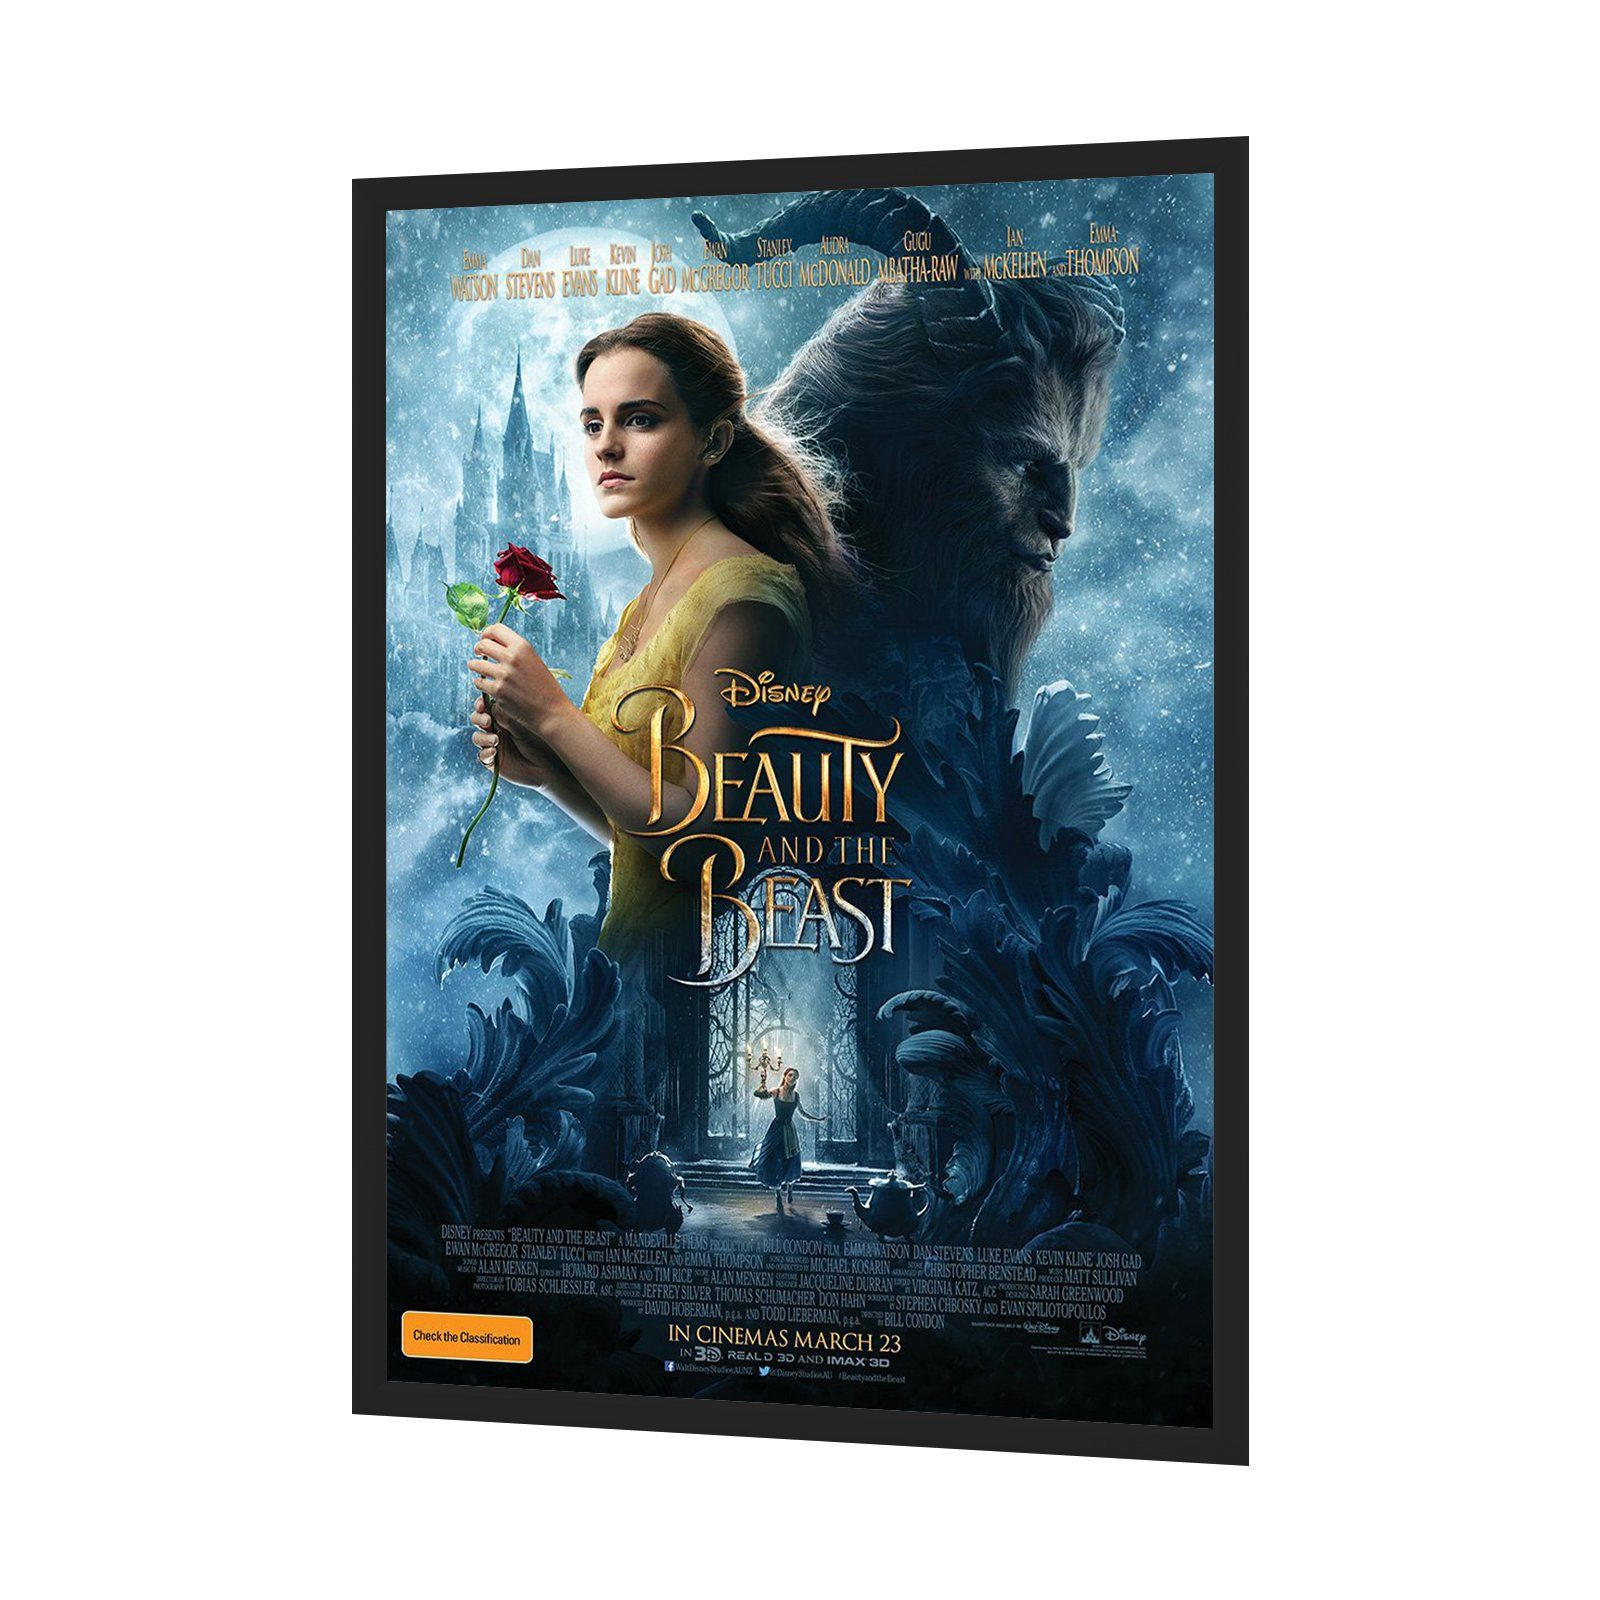 black movie poster frame 27x40 inches 12 aluminum profile front loading snap display - Movie Poster Frames 27x40